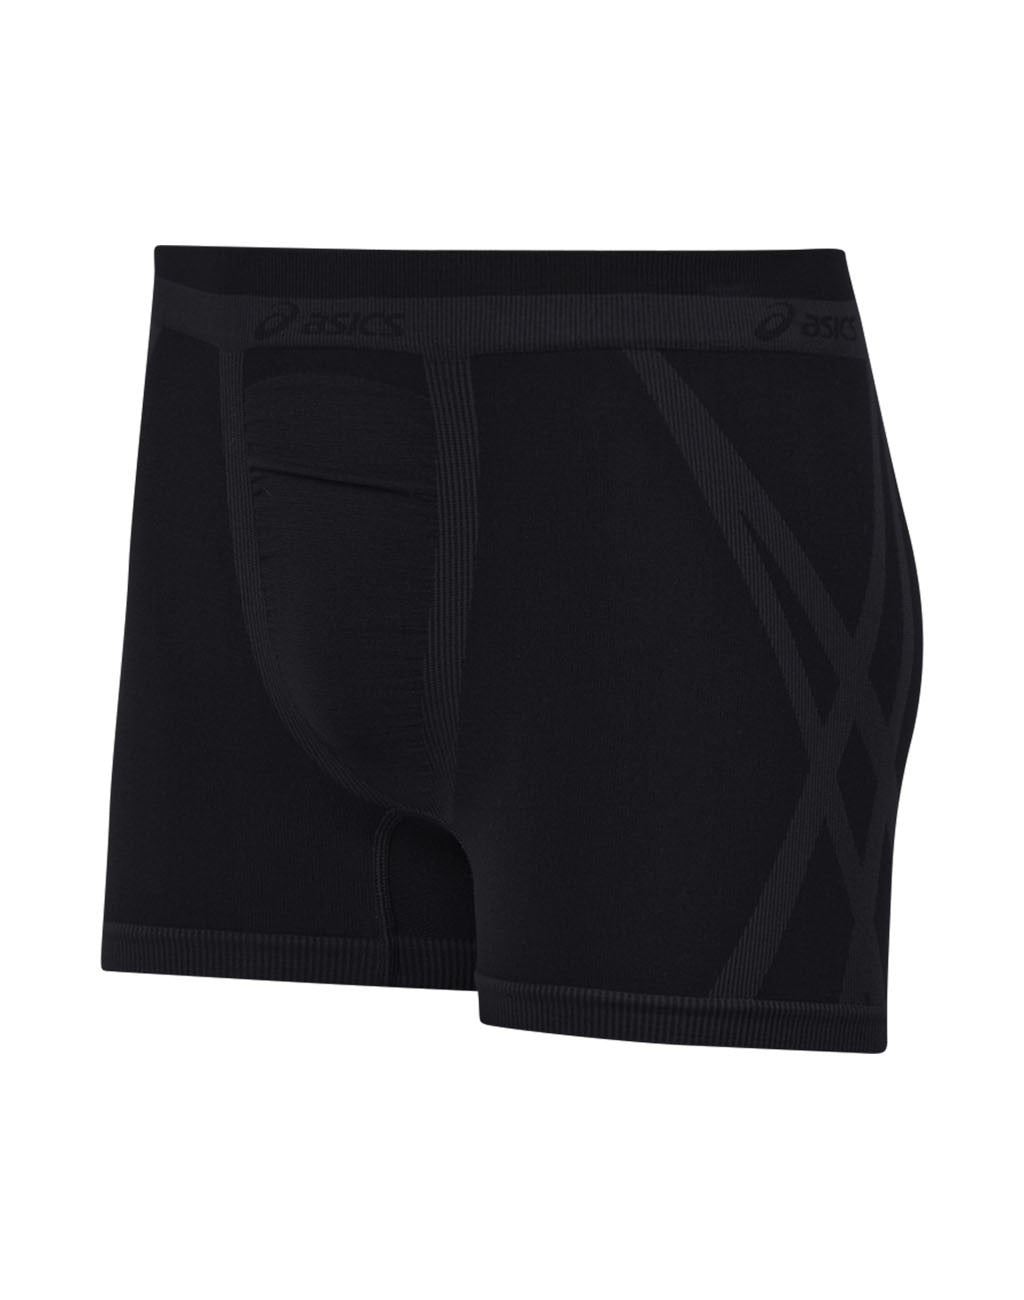 ASICS ASX Boxer Brief (Men's)S/M_master_image